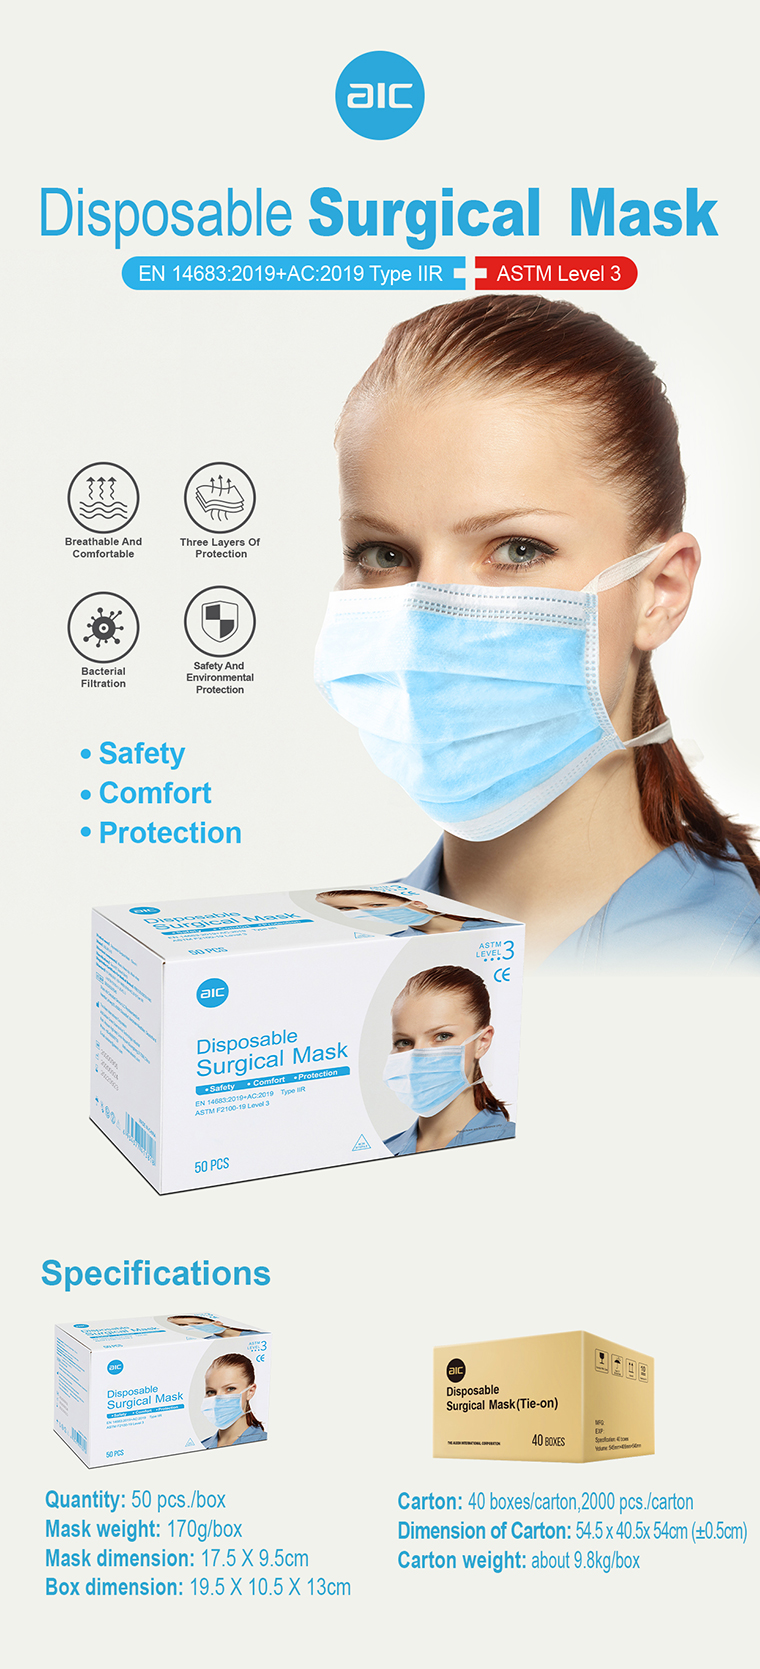 Disposable Surgical Mask ( Tie-on )